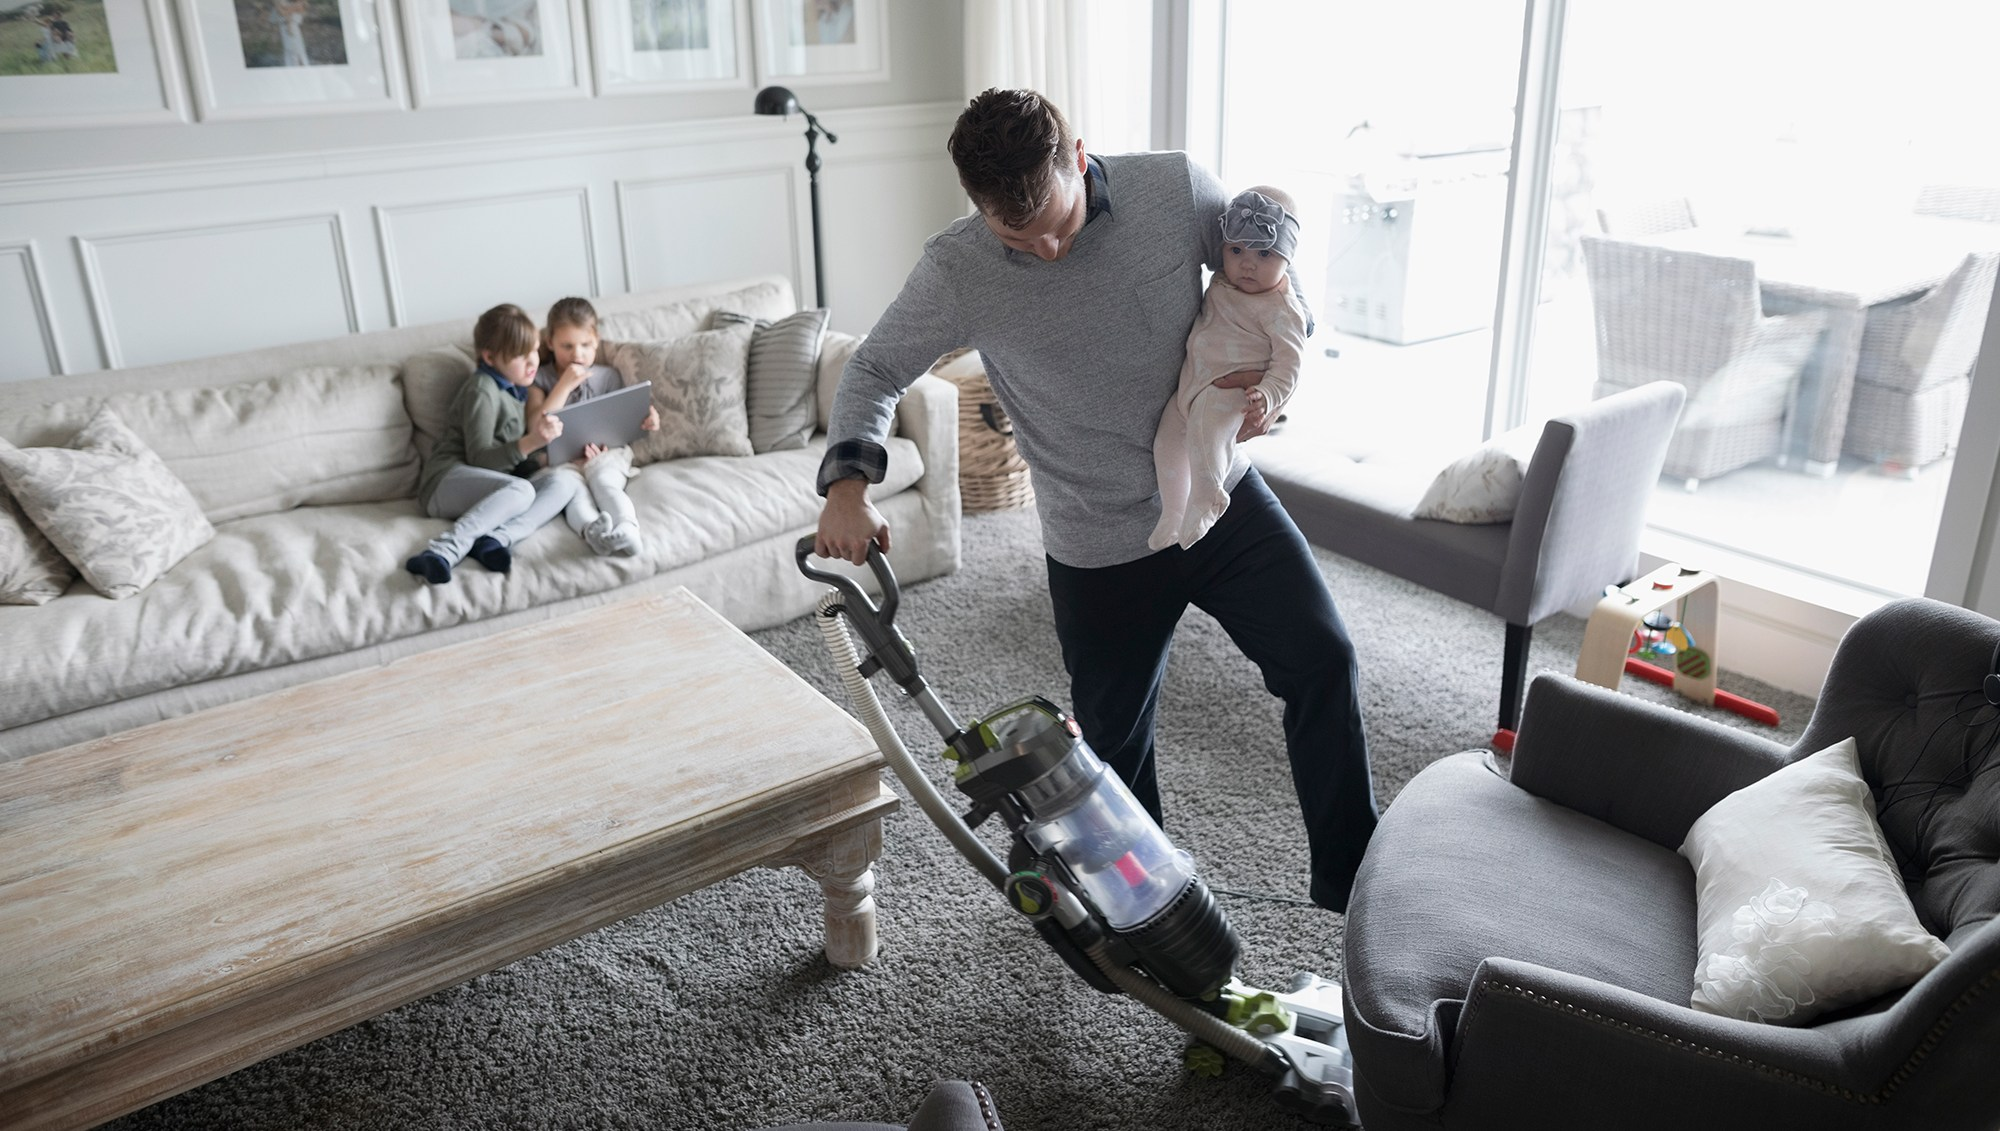 Father holding baby daughter and vacuuming living room